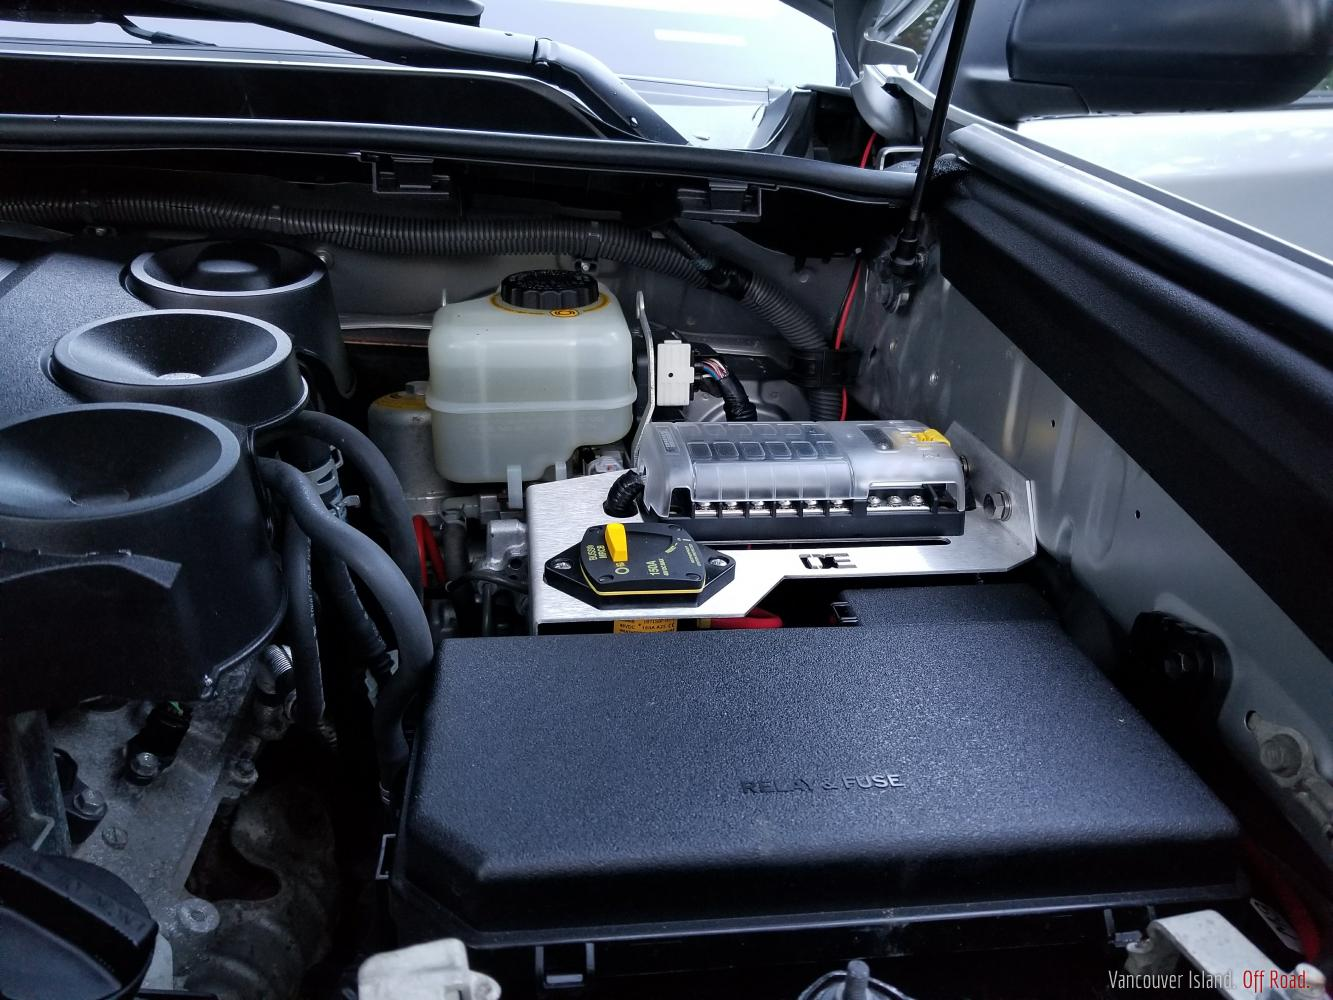 Theshanergys 2012 Toyota 4runner Vancouver Island Off Road Fuse Box Block Installed